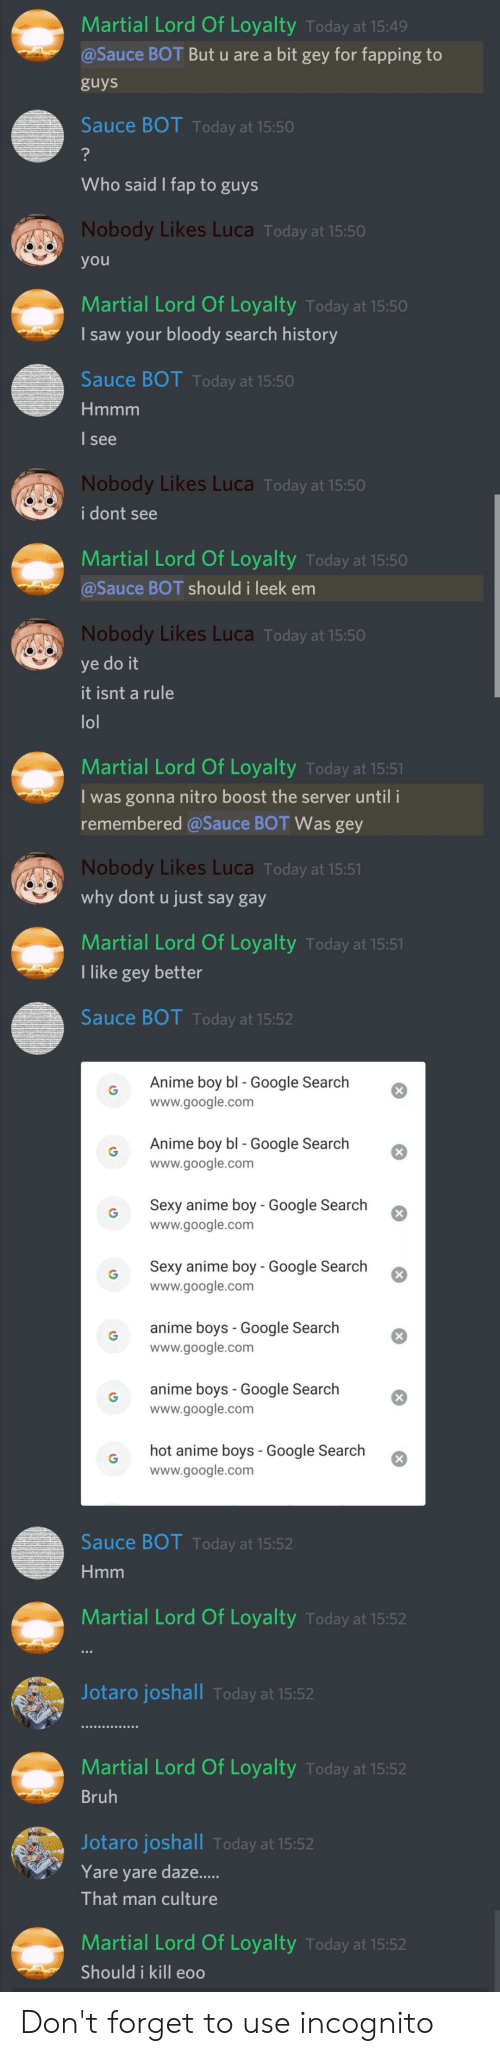 Anime, Bruh, and Google: Martial Lord Of Loyalty Today at 15:49  @Sauce BOT But u are a bit gey for fapping to  guys  Sauce BOT Today at 15:50  ?  Who said I fap to guys  Nobody Likes Luca Today at 15:50  you  Martial Lord Of Loyalty Today at 15:50  I saw your bloody search history  Sauce BOT Today at 15:50  Hmmm  I see  Nobody Likes Luca Today at 15:50  i dont see  Martial Lord Of Loyalty Today at 15:50  @Sauce BOT should i leek em  Nobody Likes Luca Today at 15:50  ye do it  it isnt a rule  lol  Martial Lord Of Loyalty Today at 15:51  I was gonna nitro boost the server until i  remembered @Sauce BOT Was gey  Nobody Likes Luca Today at 15:51  why dont u just say gay  Martial Lord Of Loyalty Today at 15:51  I like gey better  Sauce BOT Today at 15:52  Anime boy bl - Google Search  www.google.com  Anime boy bl - Google Search  www.google.com  Sexy anime boy - Google Search  www.google.com  Sexy anime boy - Google Search  www.google.com  anime boys Google Search  www.google.com  anime boys Google Search  www.google.com  hot anime boys - Google Search  www.google.com  Sauce BOT Today at 15:52  Hmm  Martial Lord Of Loyalty Today at 15:52  Jotaro joshall Today at 15:52  Martial Lord Of Loyalty Today at 15:52  Bruh  Jotaro joshall Today at 15:52  Yare yare daze....  That man culture  Martial Lord Of Loyalty Today at 15:52  Should i kill eoo Don't forget to use incognito